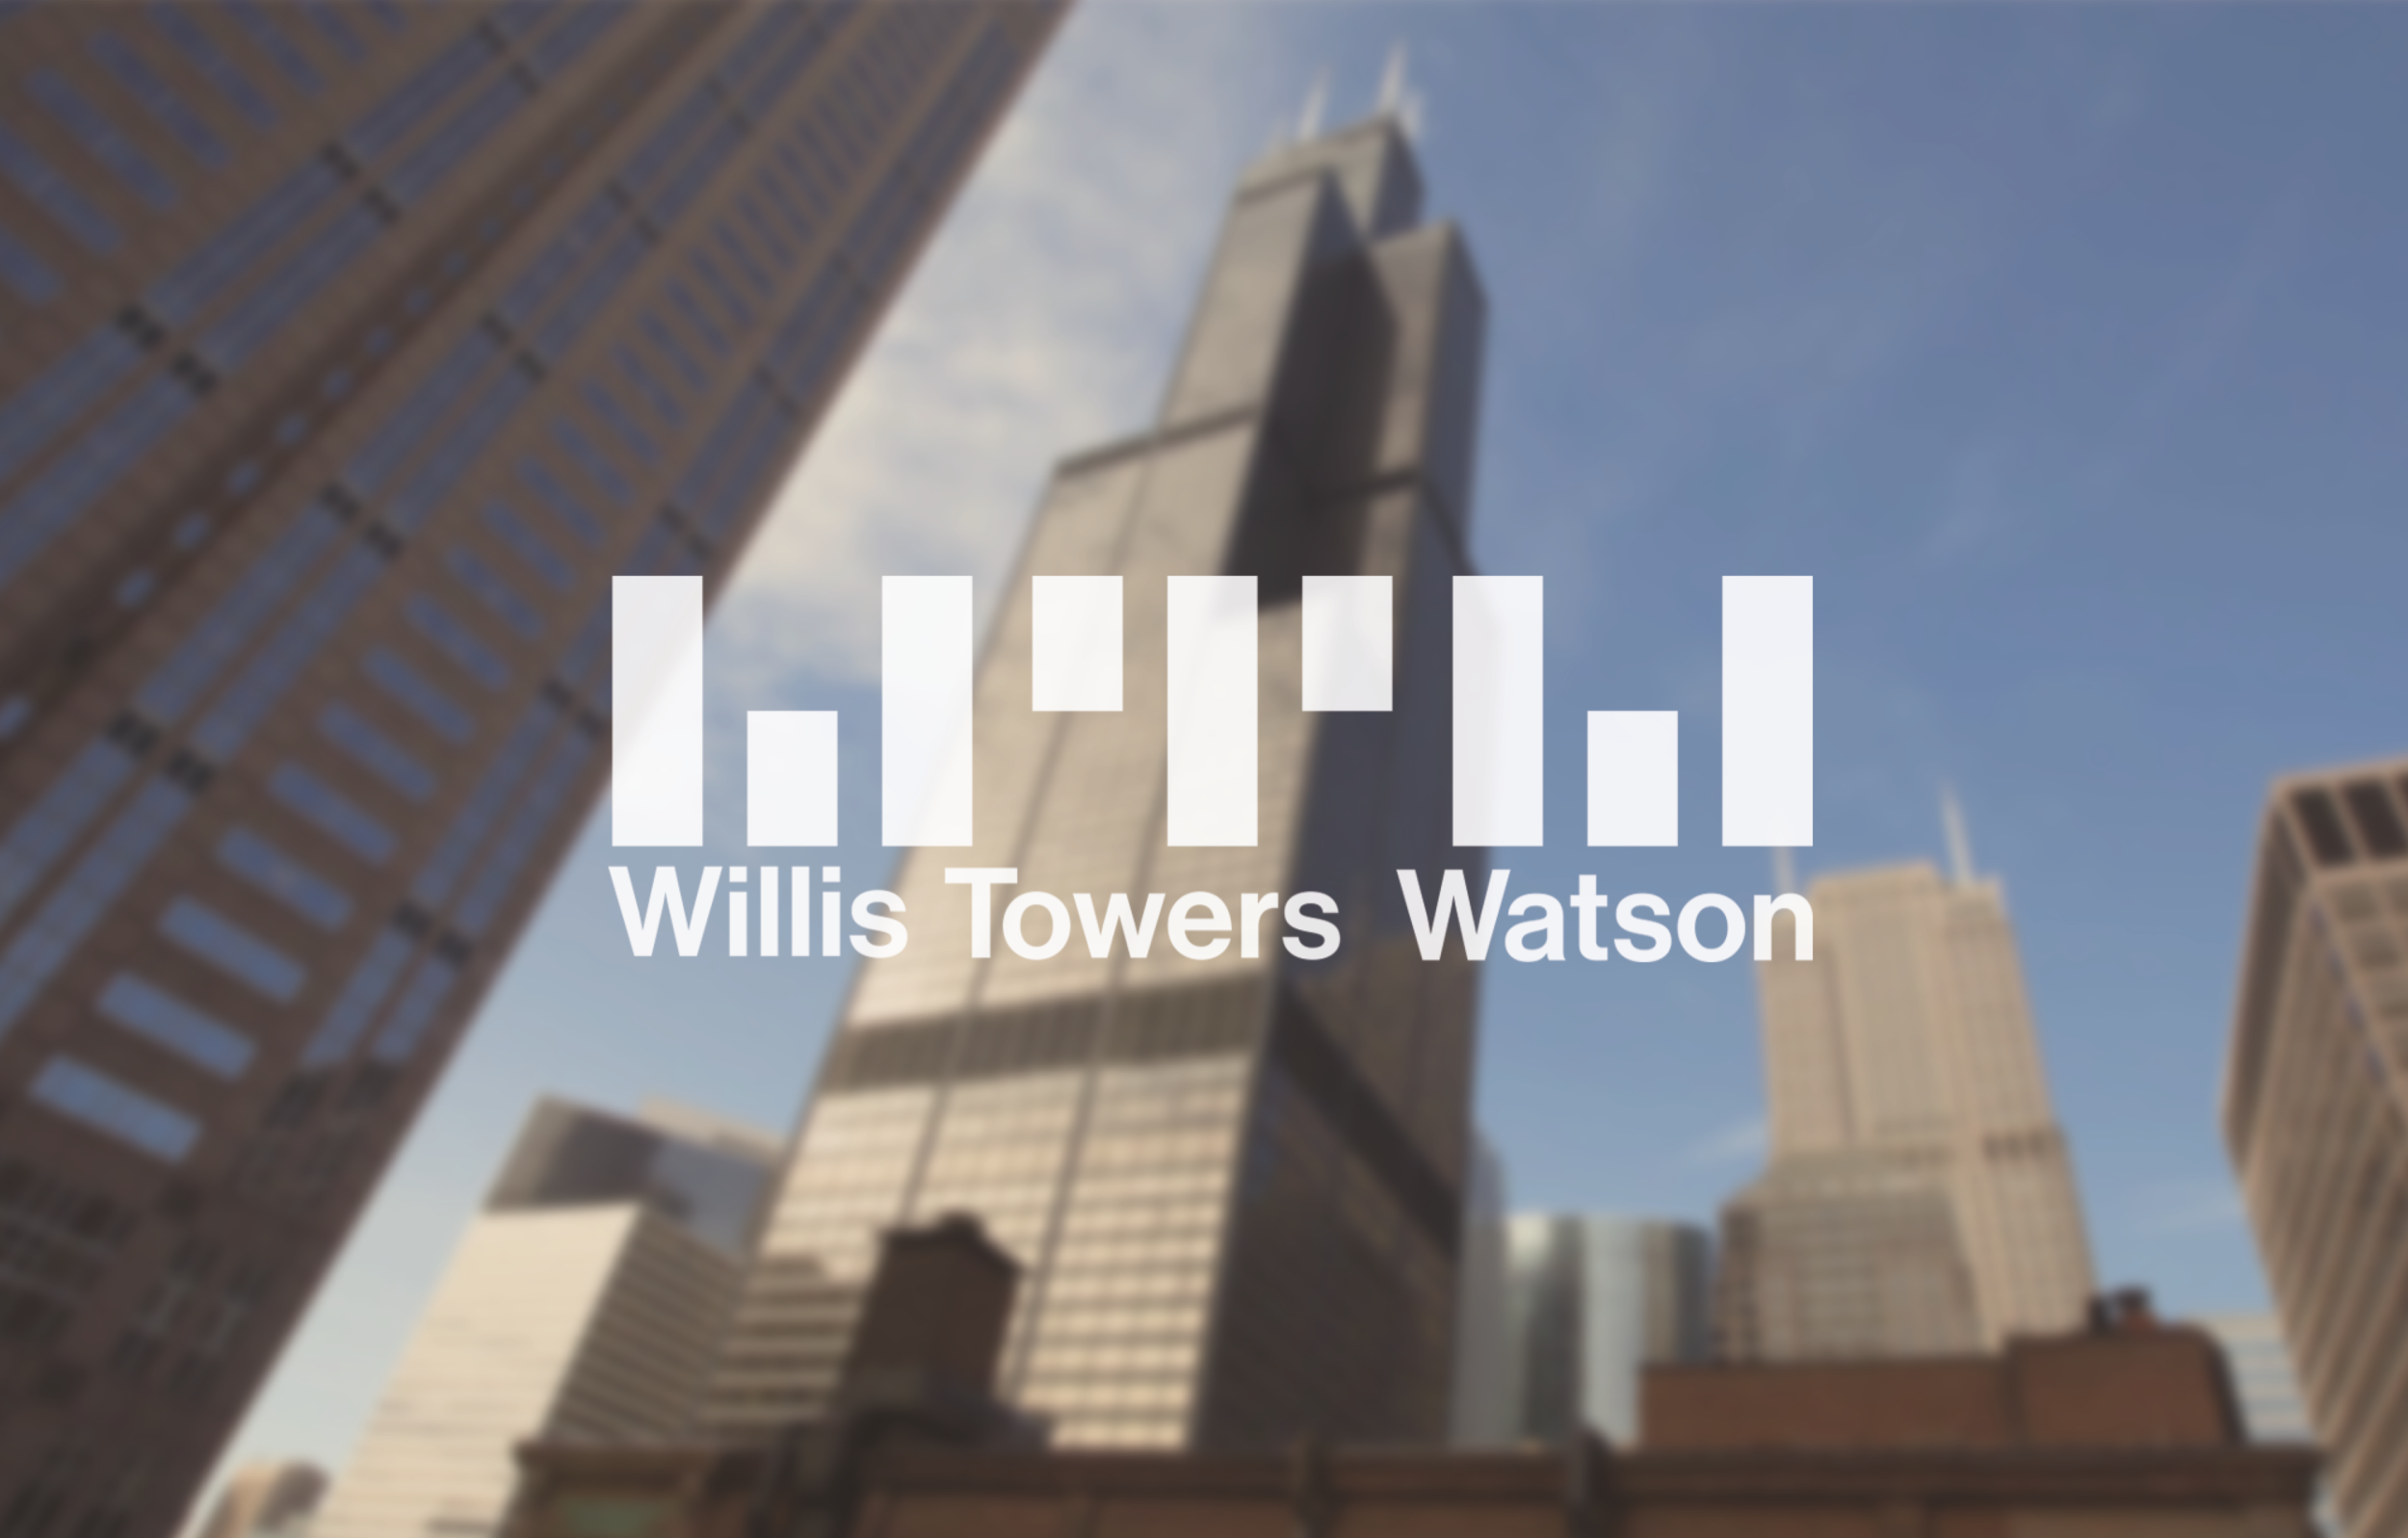 Willis Towers Watson Case Study Thumbnail-01-01.png